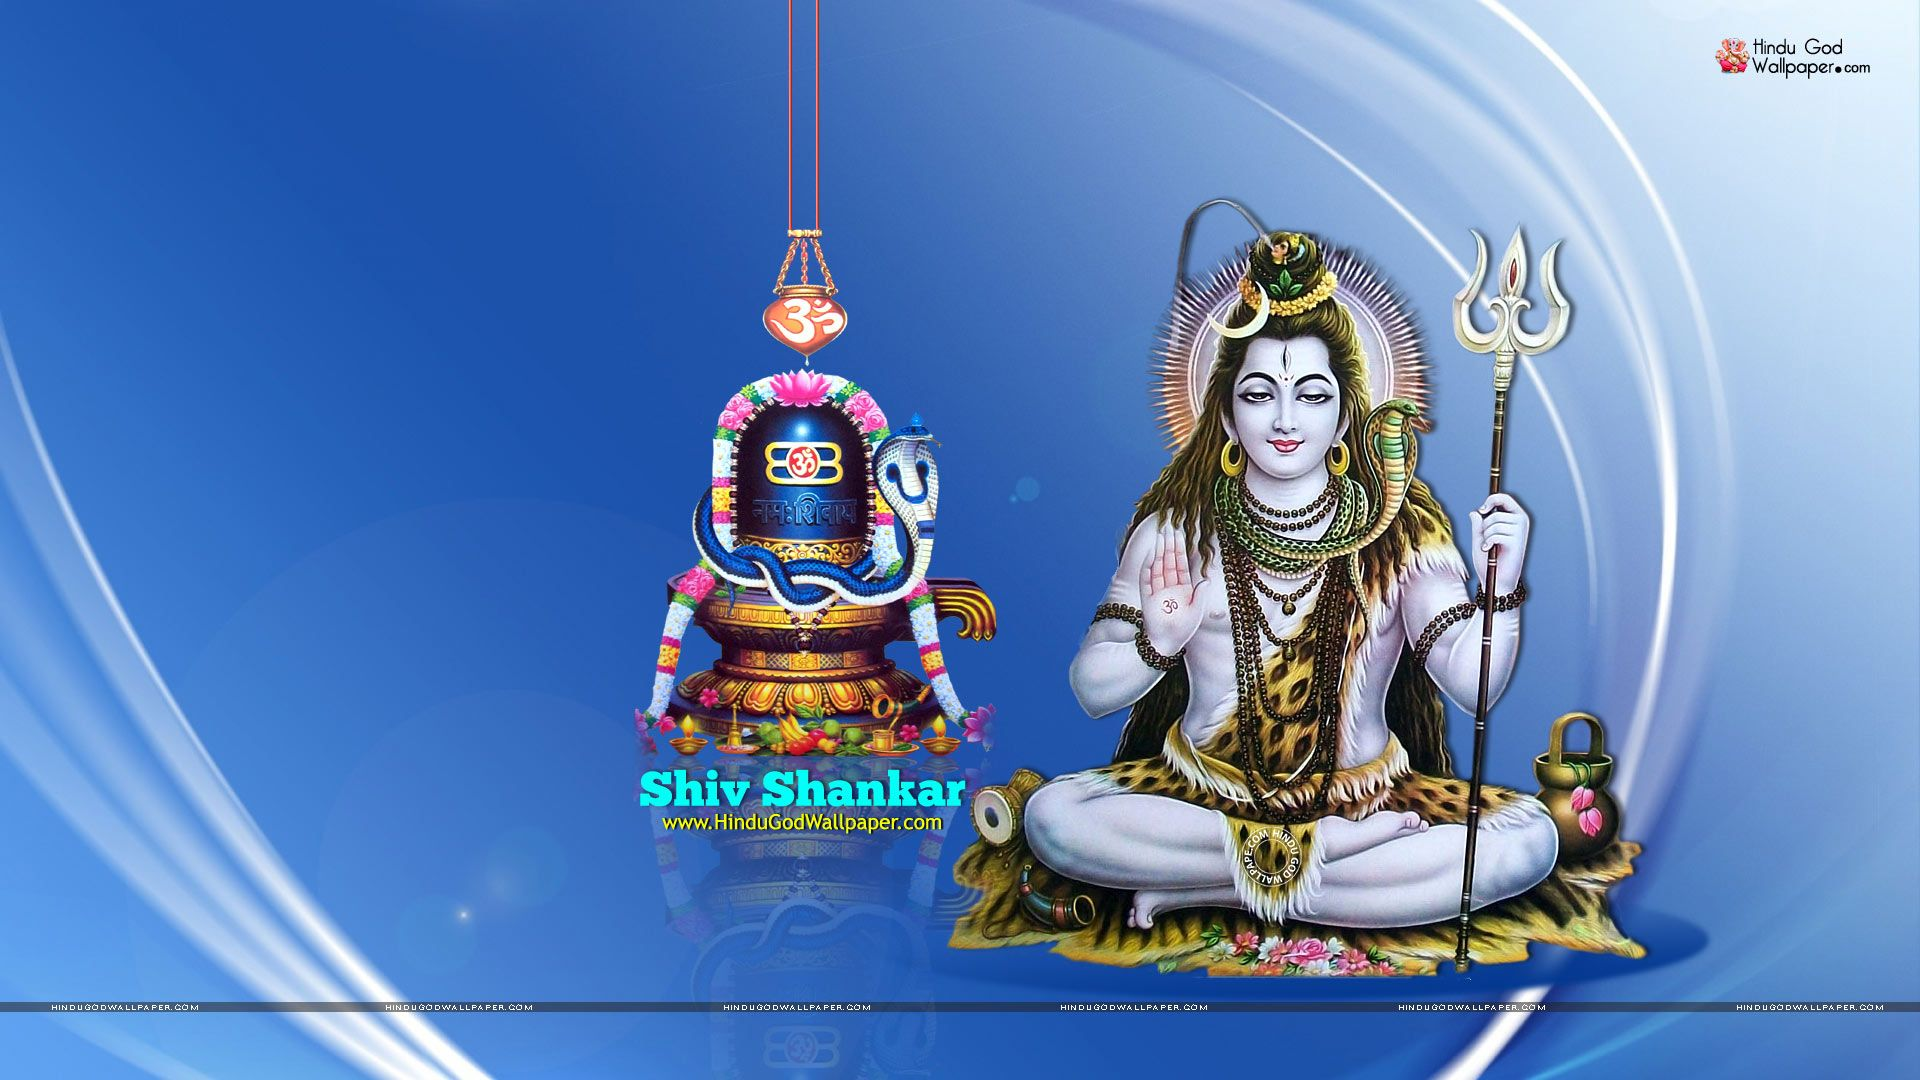 Lord Shiva Full Hd 1080p Photo: Shiv Shankar Wallpaper HD Full Size 1080p Download